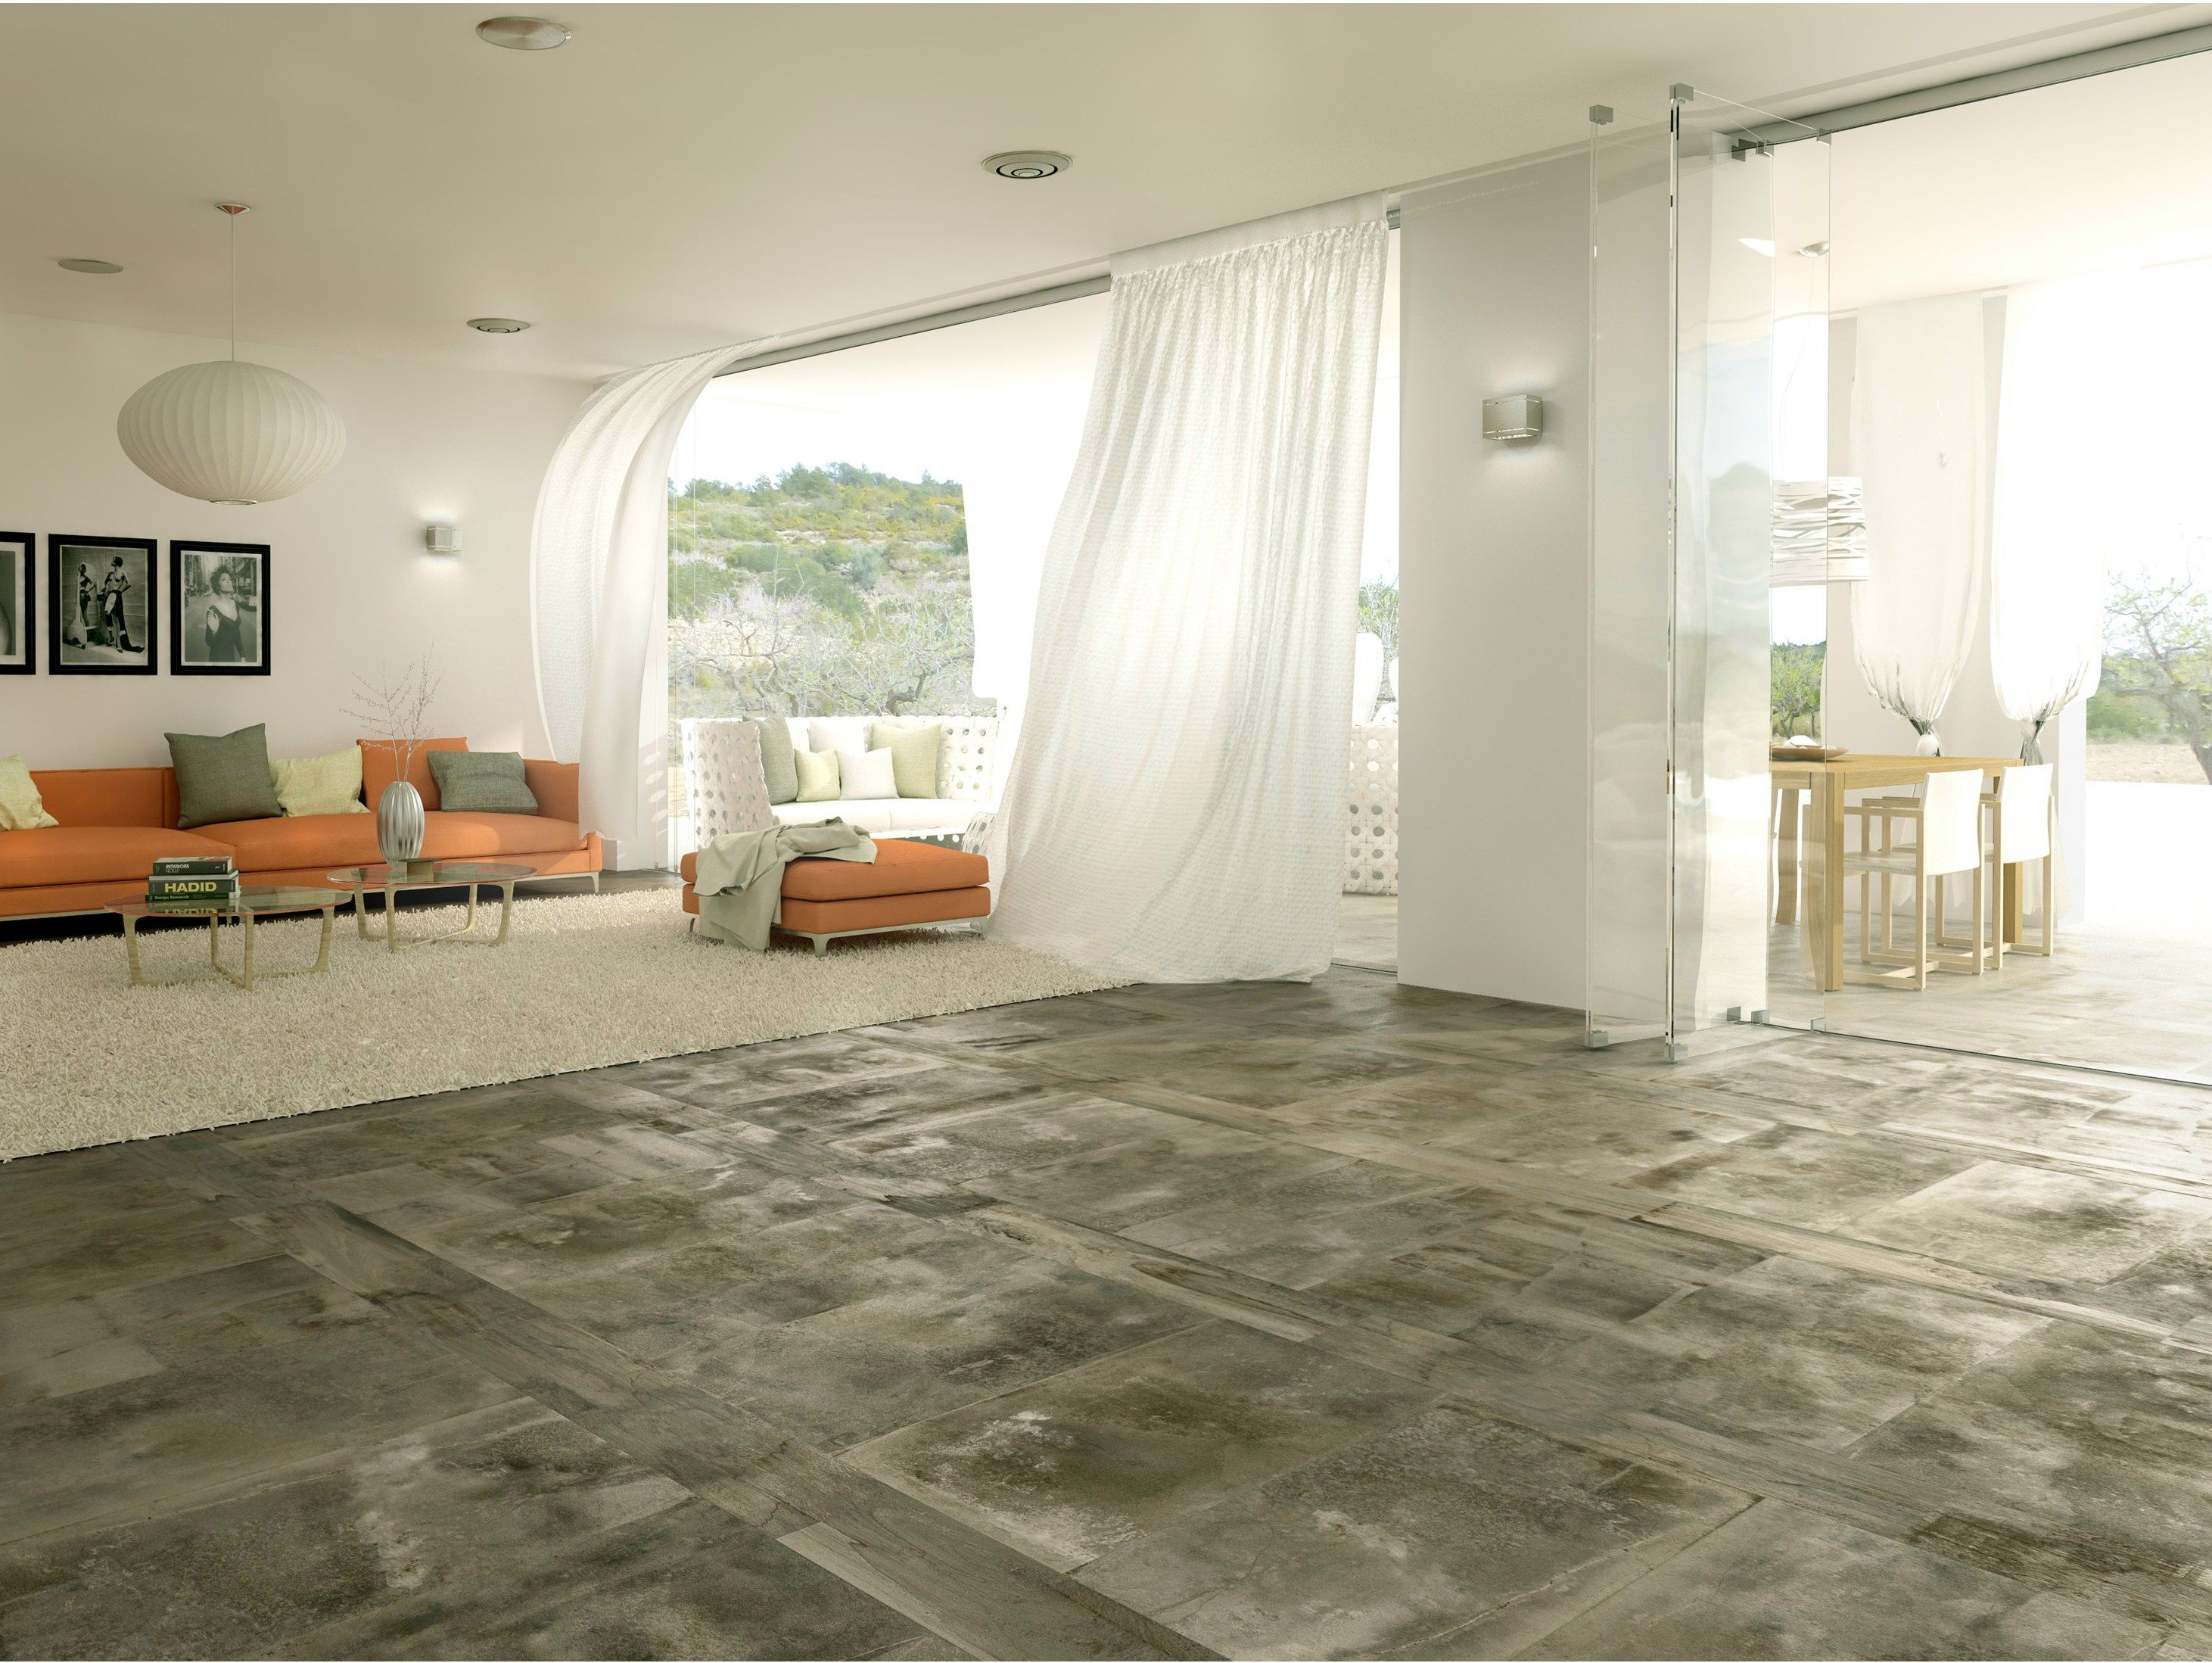 Porcelain Stoneware Floor Tiles With Wood Effect Mixing By Ferro